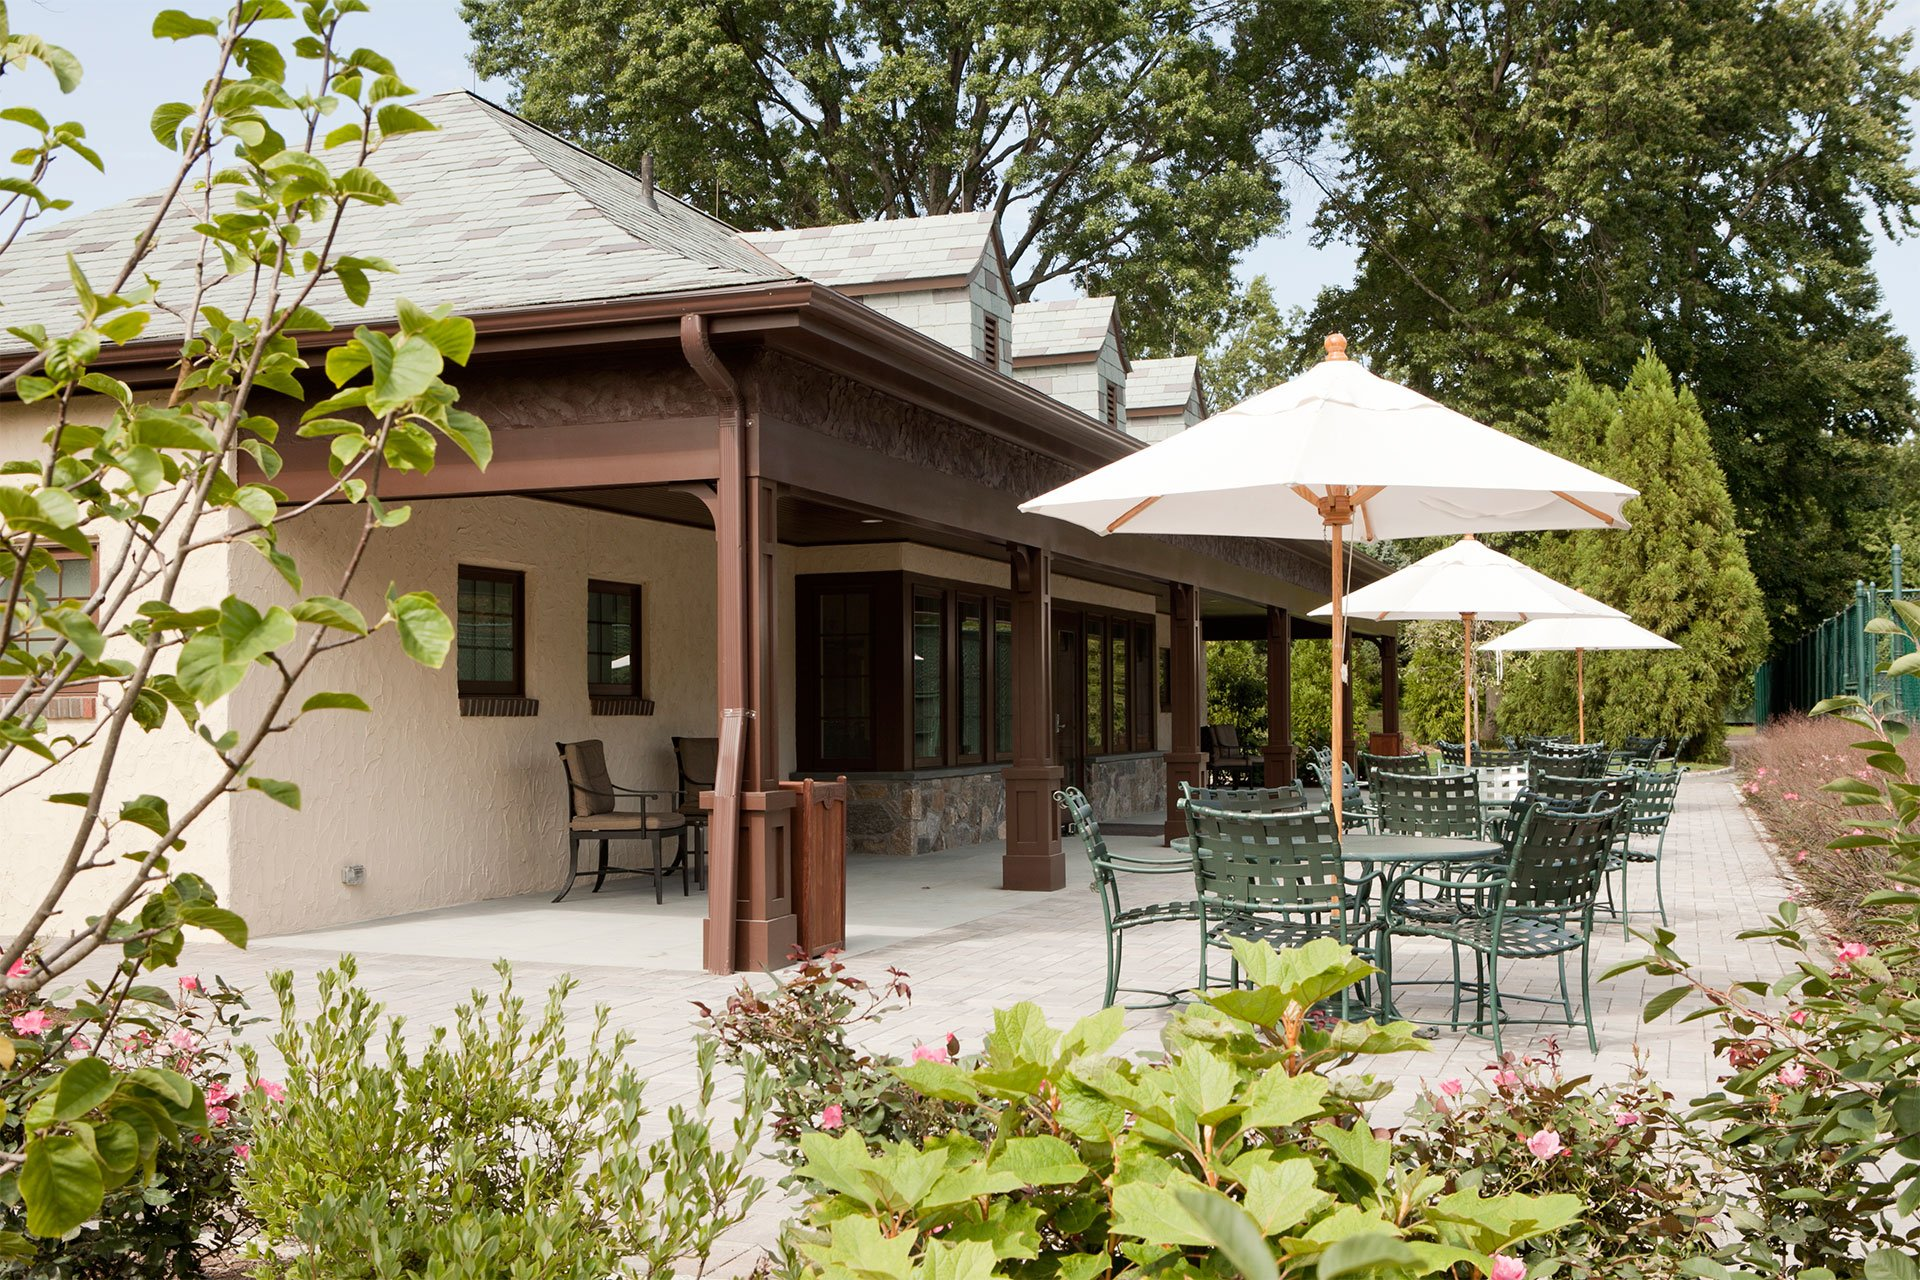 murphy-brothers-contracting-commercial-commercial-quaker-ridge-exterior-tennis-12